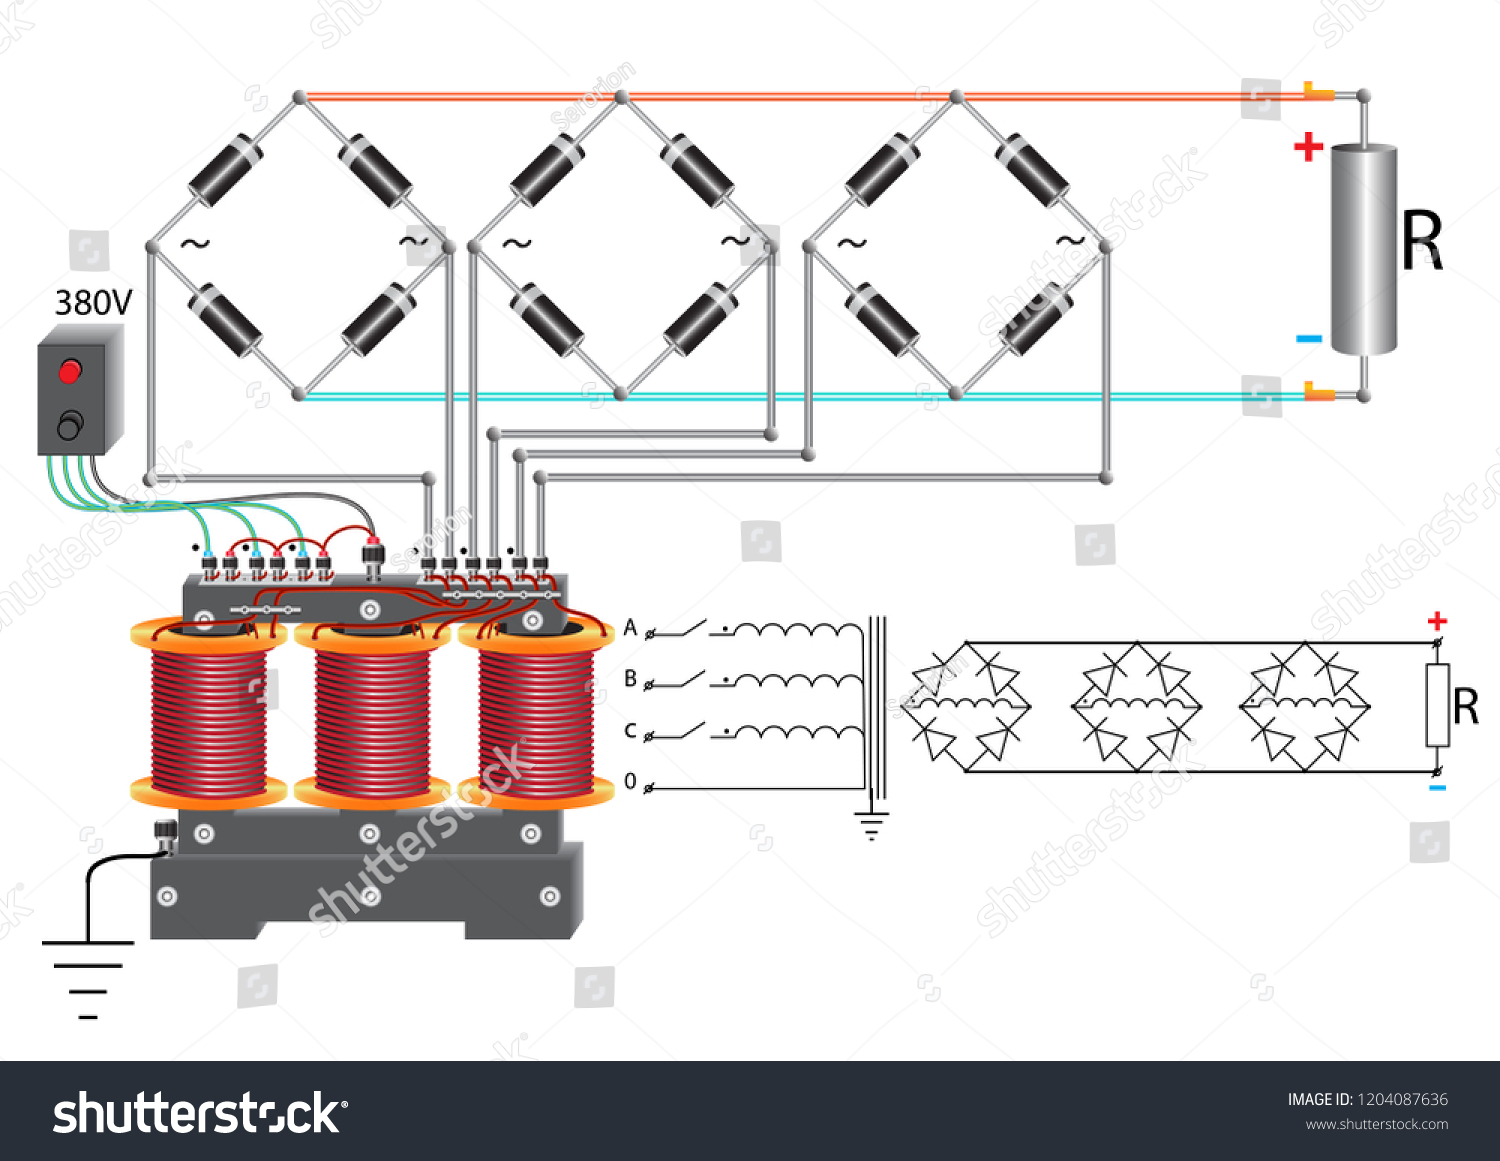 hight resolution of a power unit that uses a three phase step down voltage transformer a diode bridge and a rheostat to change the current in the electrical circuit